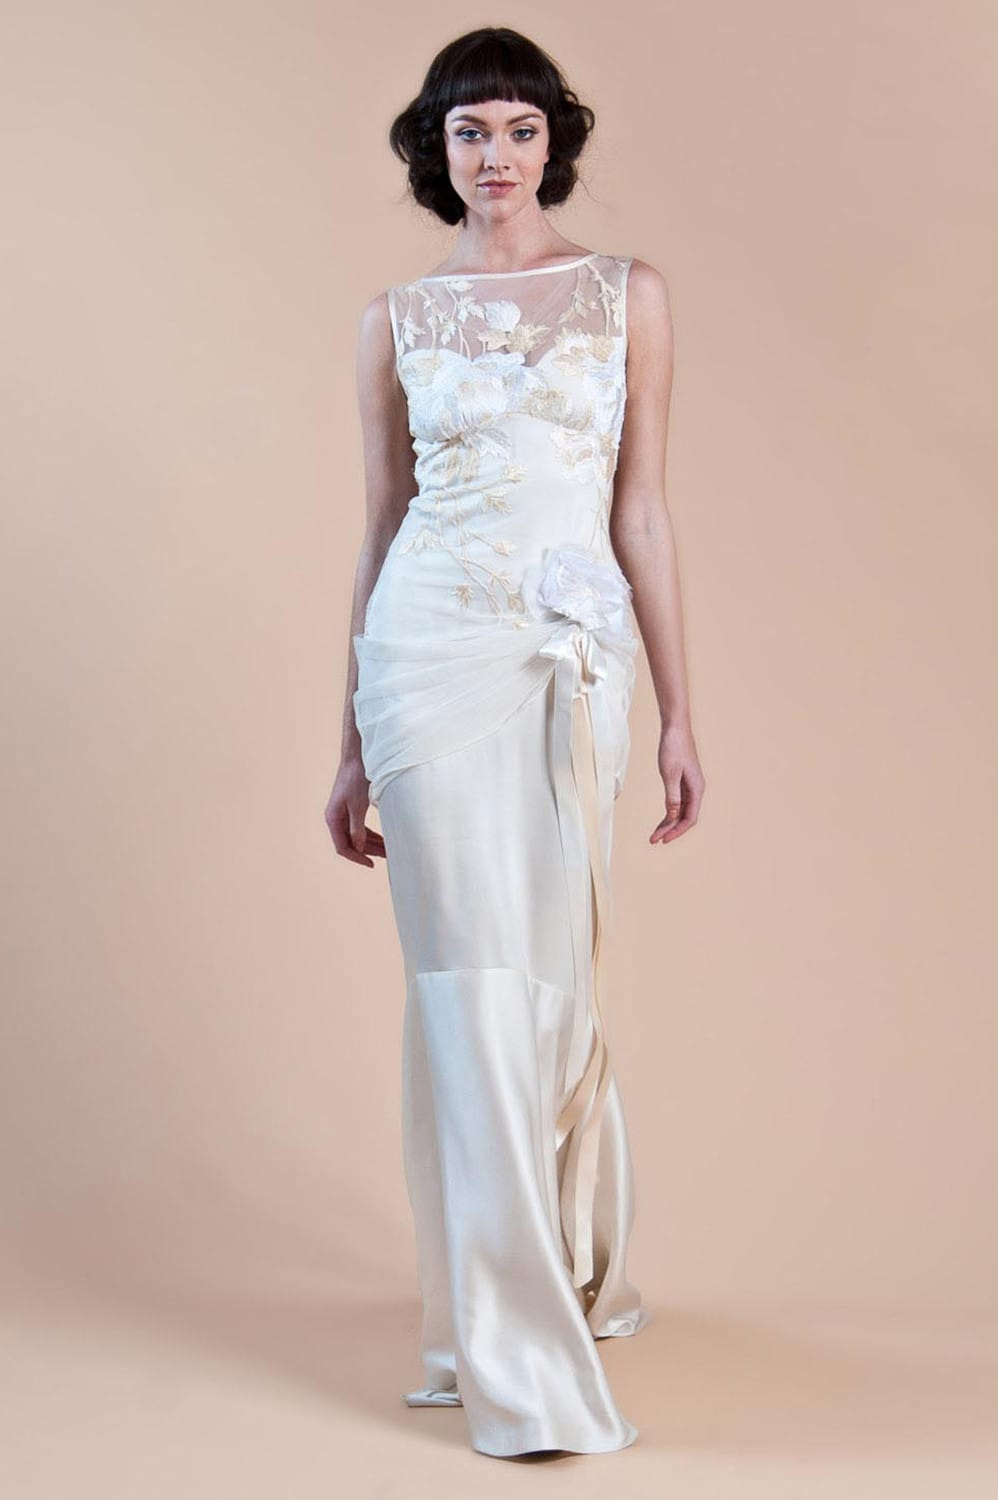 Claire pettibone willow dress sell my wedding dress for Sell wedding dress for free